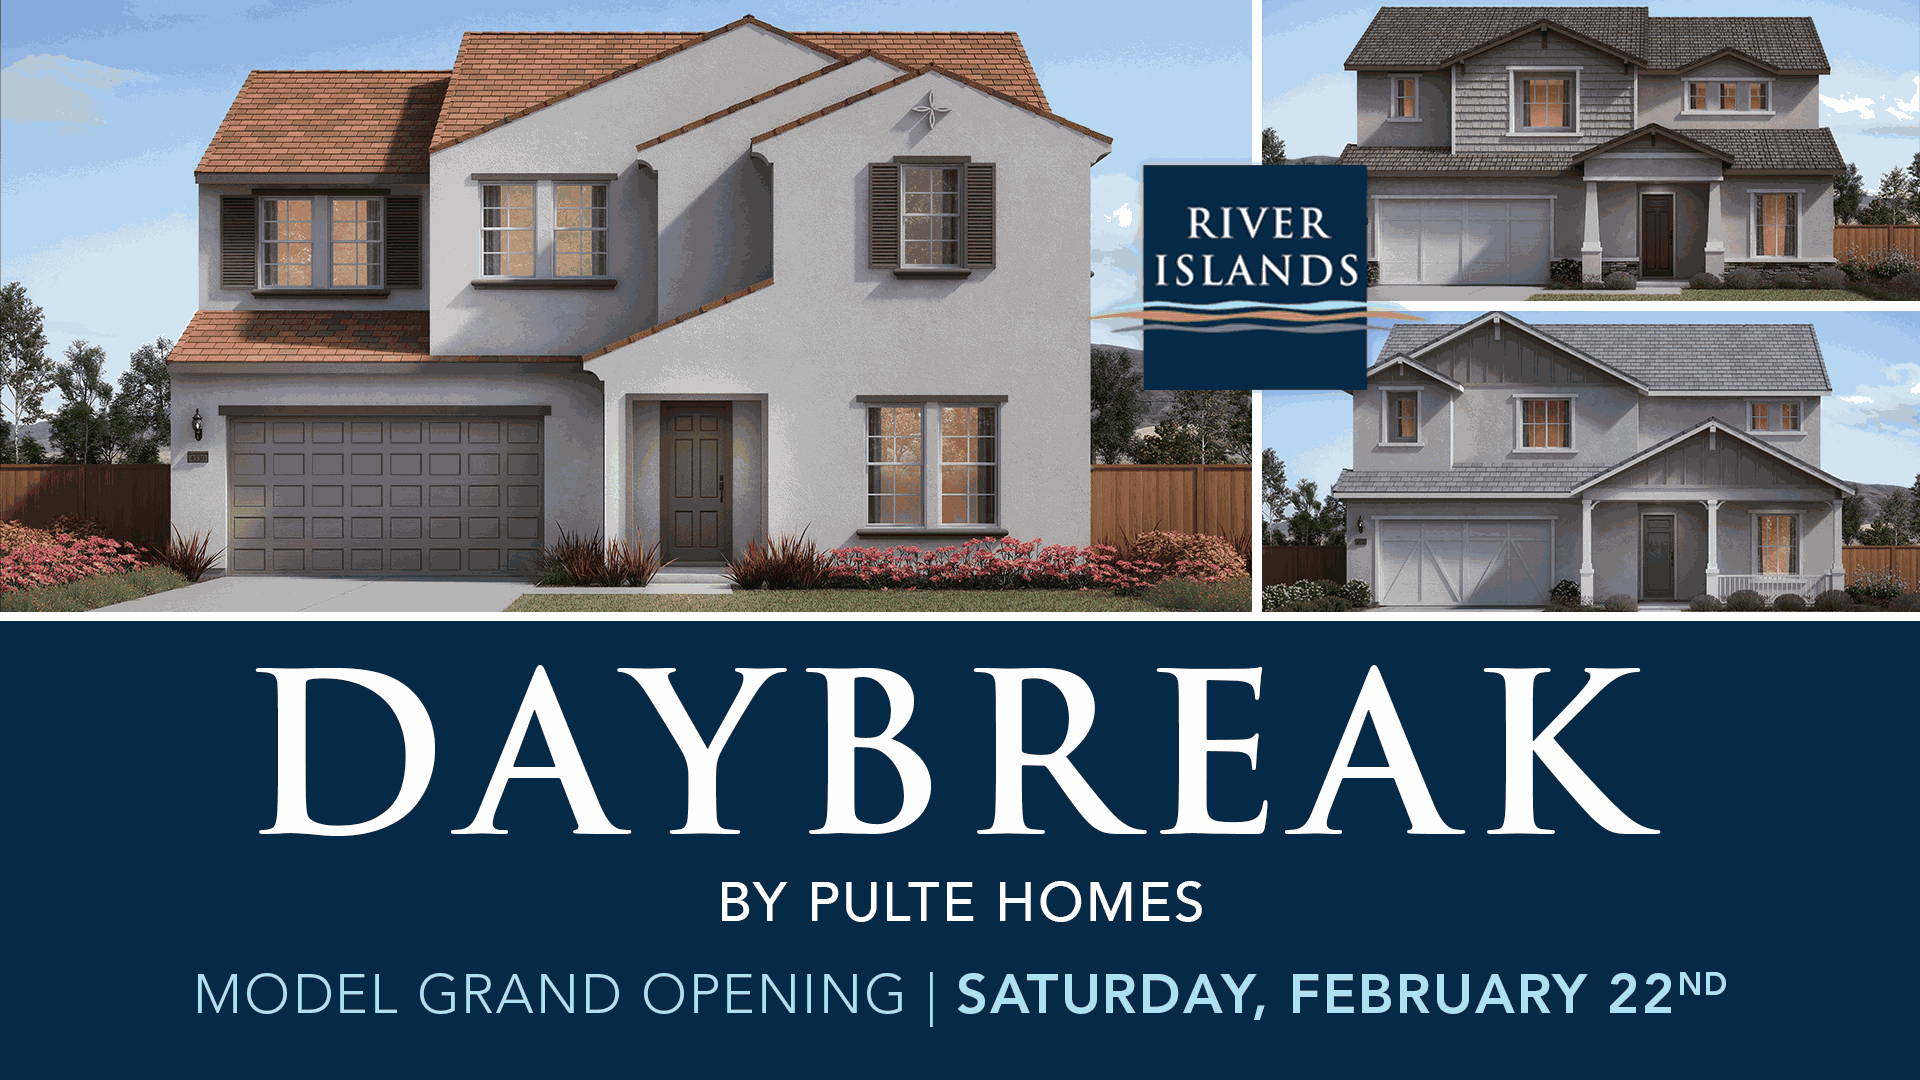 Daybreak by Pulte Homes Grand Opening – February 22, 2020